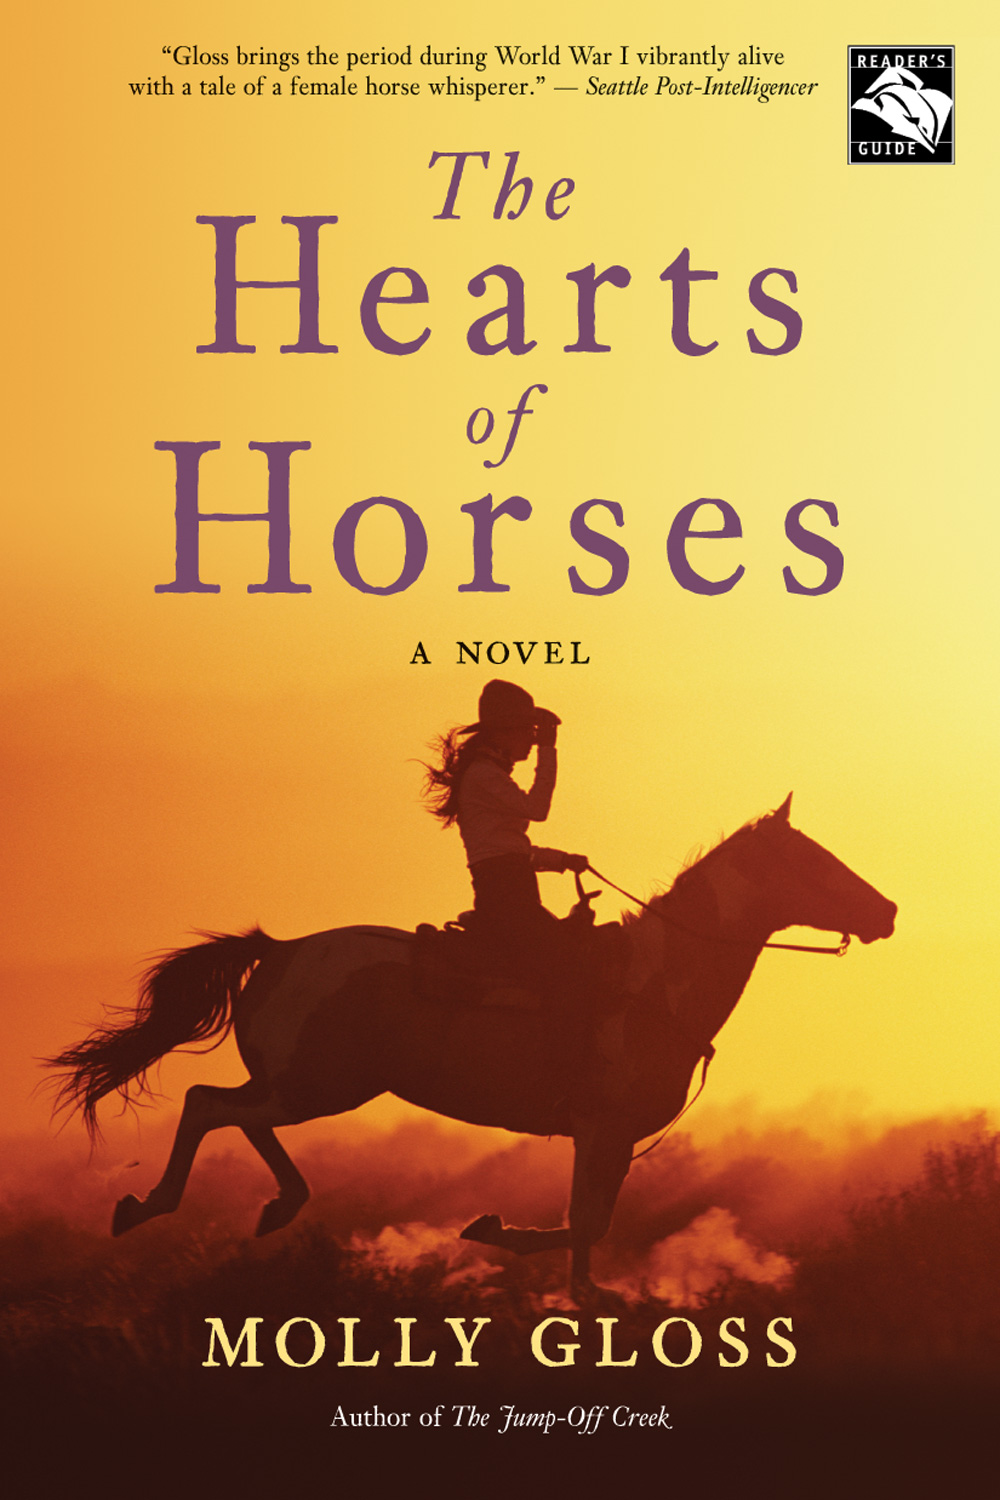 A Good Horse Story That Will Hook You Right Away